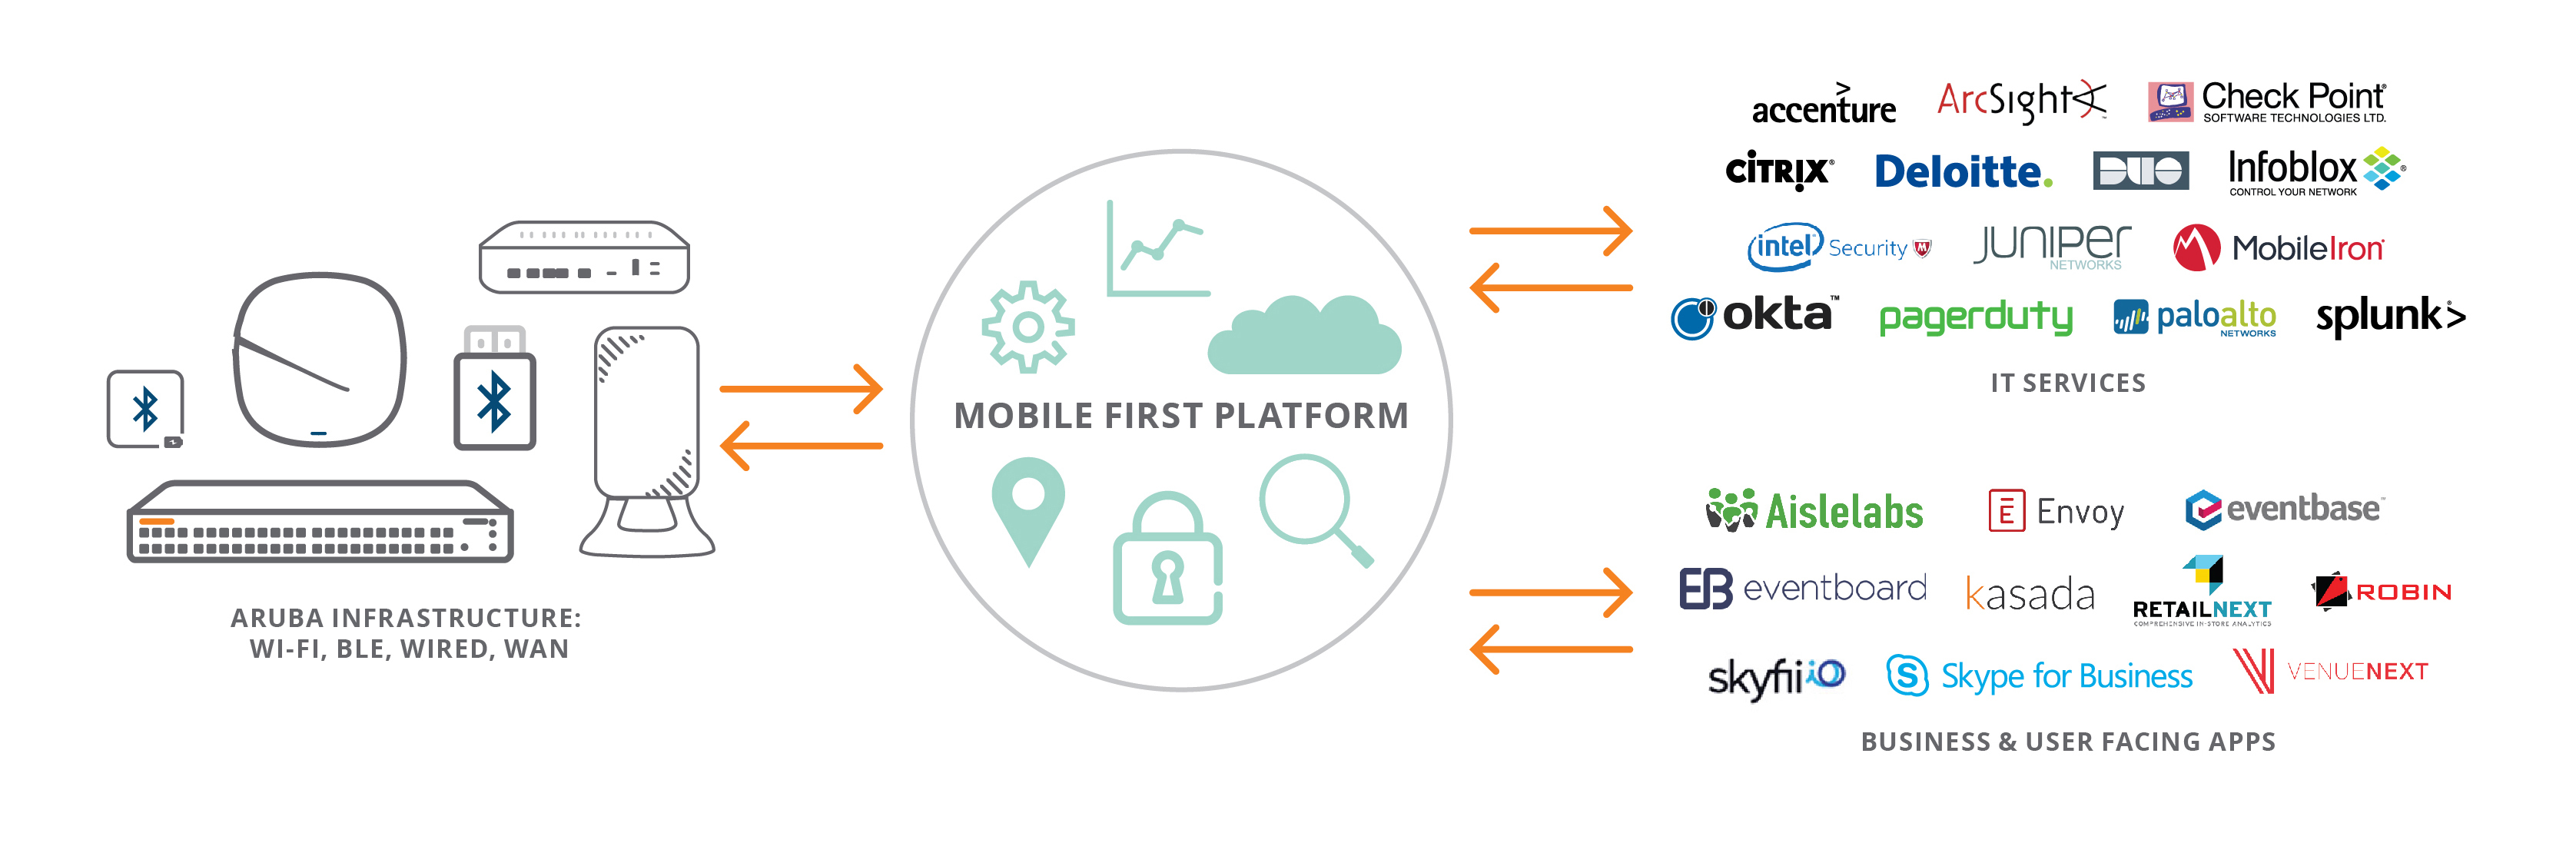 HPE Aruba Introduces Developer-Ready Mobile First Platform